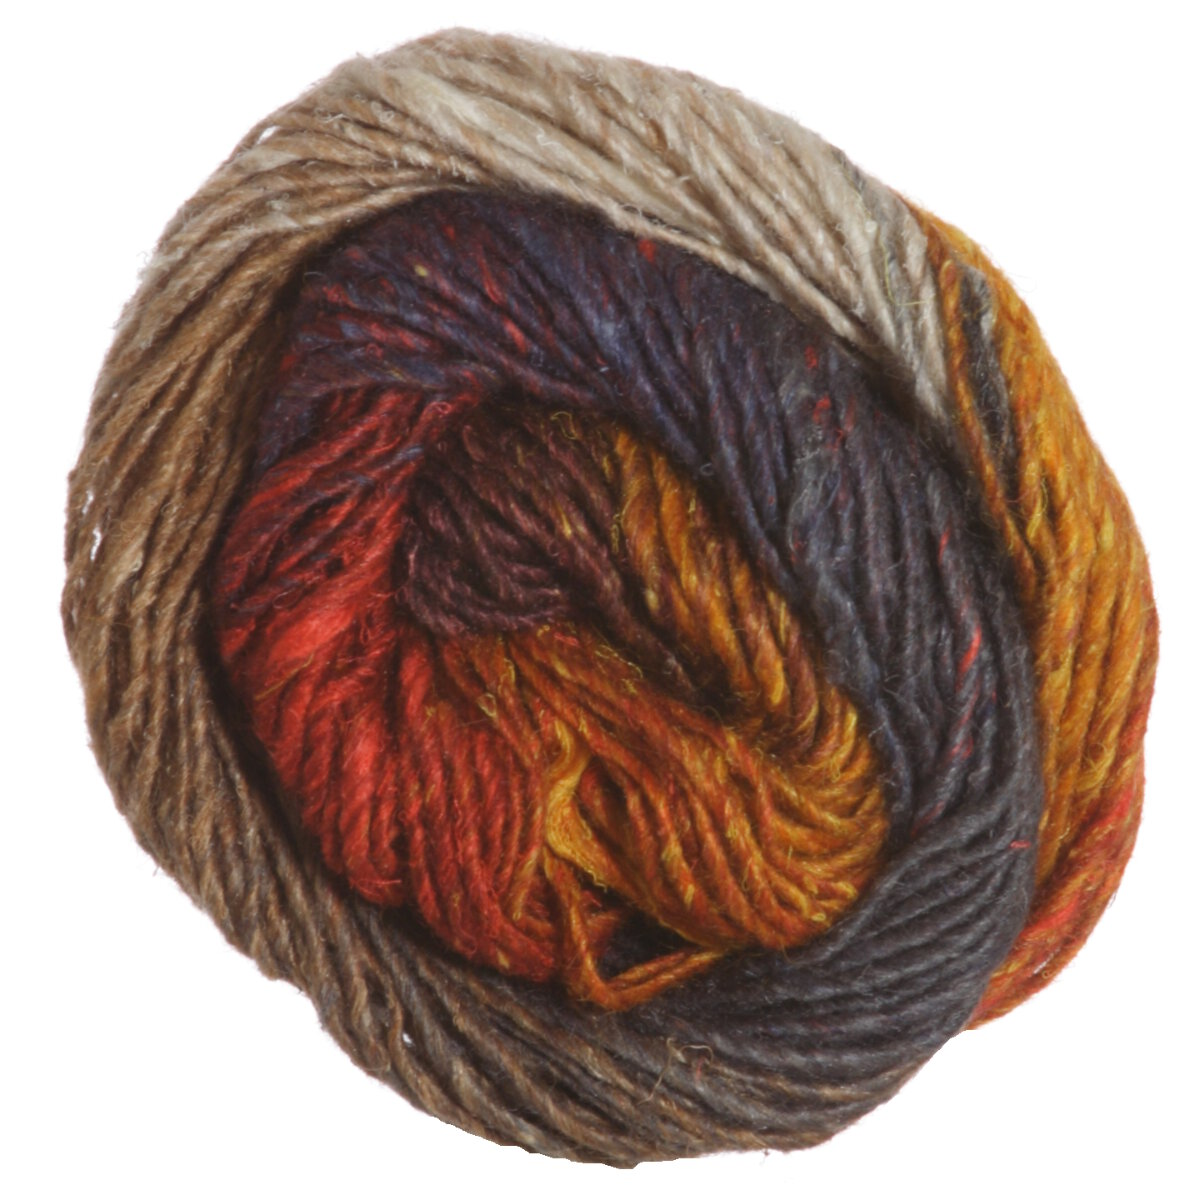 Noro Silk Garden Yarn - 349 Burnt Orange, Wine, Greys, Taupe at ...